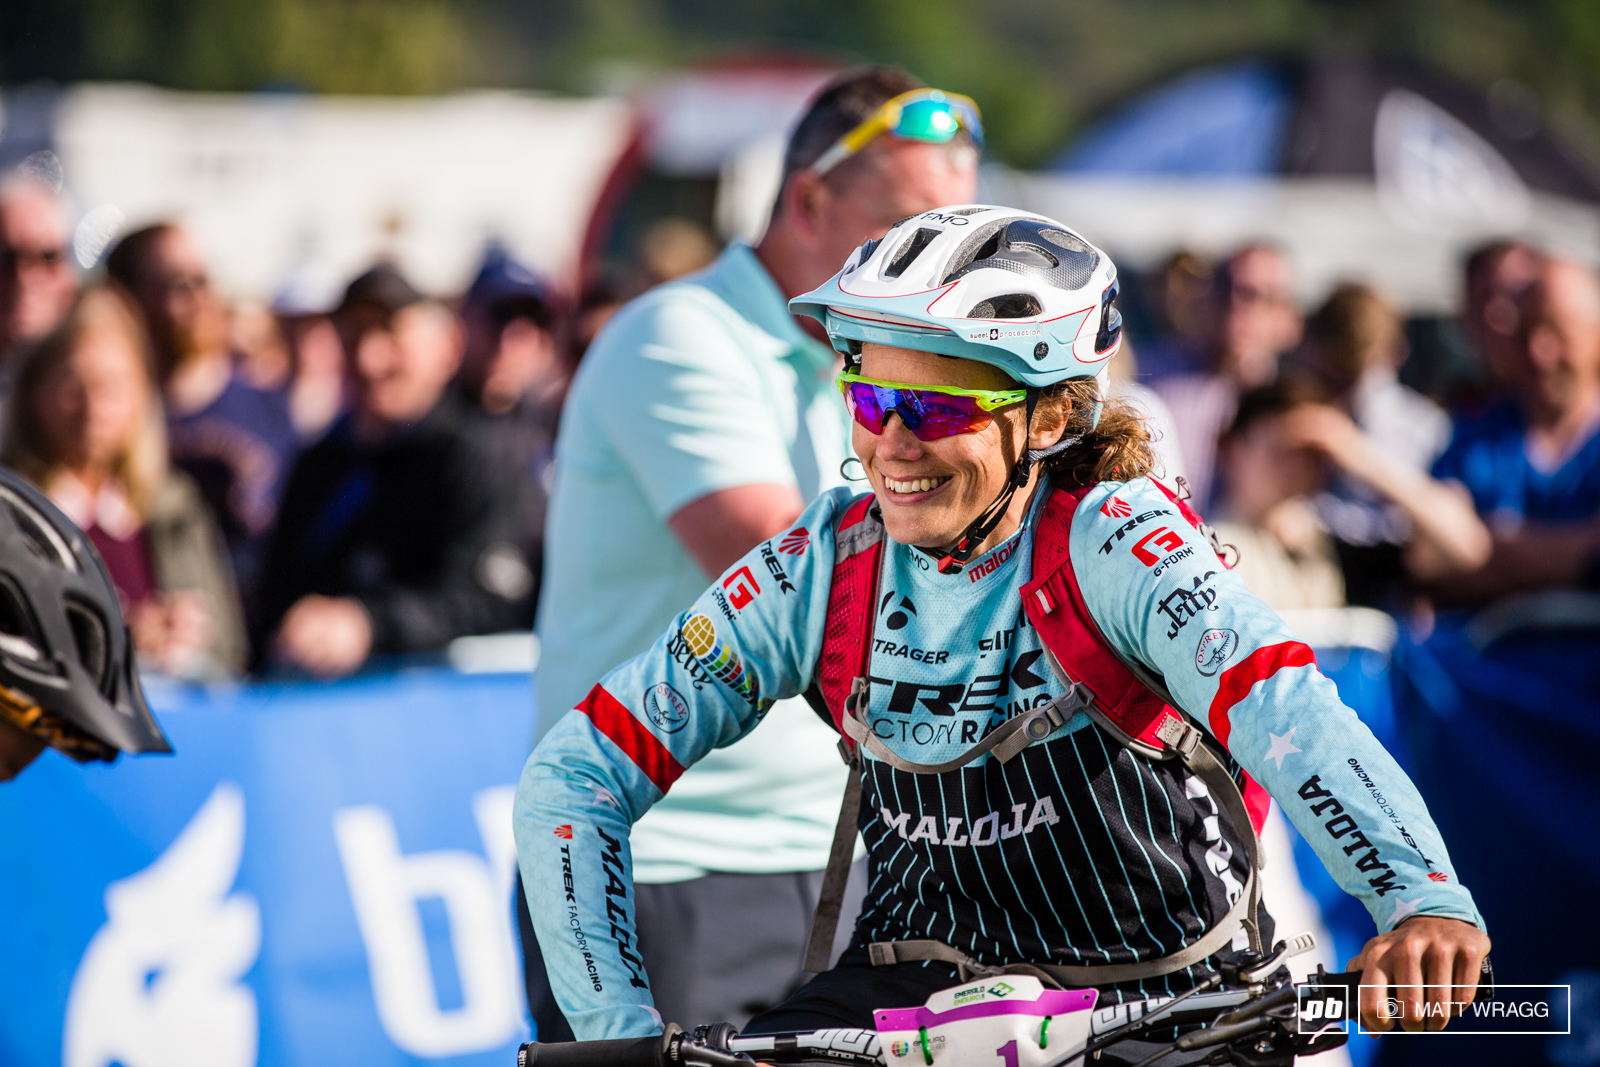 The timesheets may look like it was easy but it was anything but for Tracy today - she had to give it all to maintain her familiar dominance and remind us how much we re all missing now she isn t a regular racer at these events.